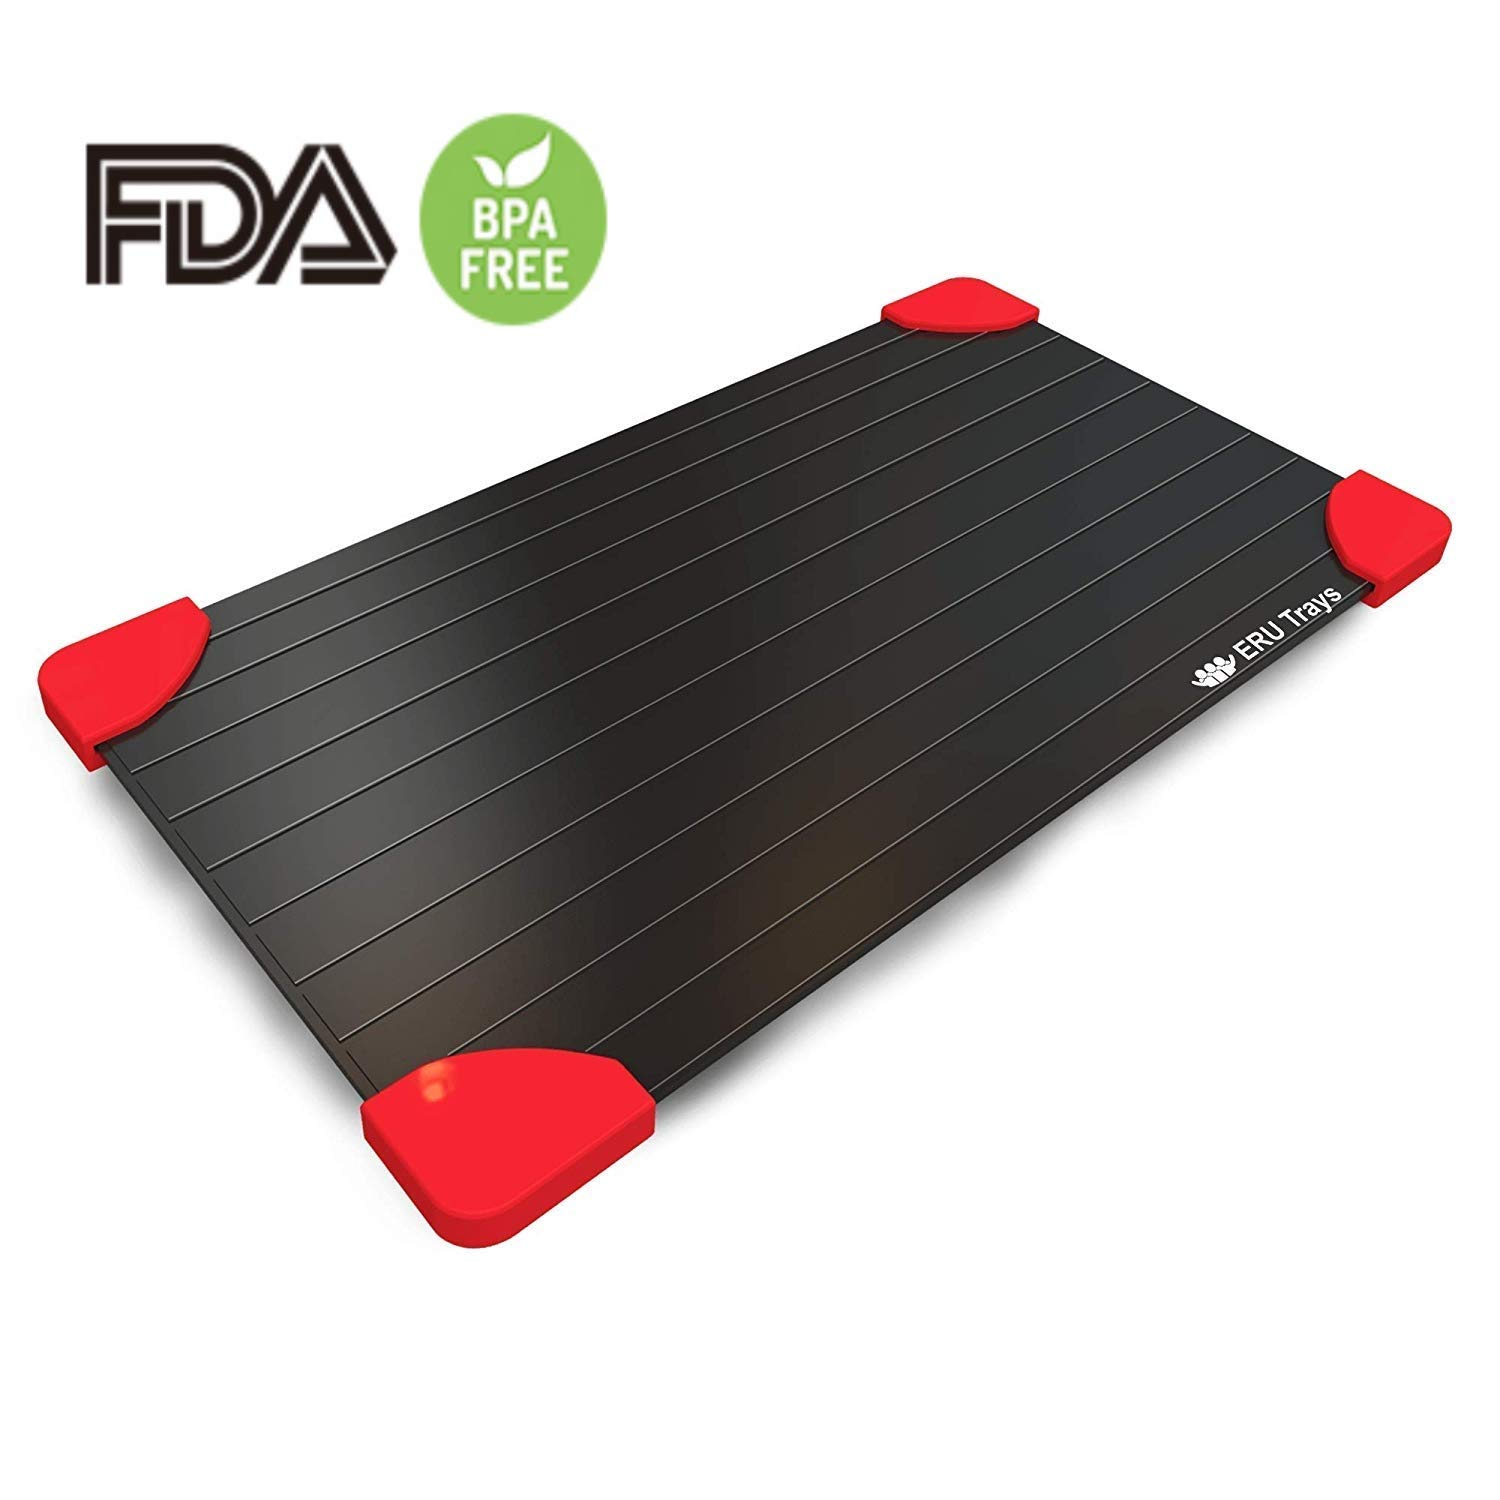 ERU Rapid Thaw Defrosting Tray - LARGEST SIZE 3 mm Thickness Magic Fast Thawing Plate For Frozen Foods - No Battery, No Microwave, FDA Approved